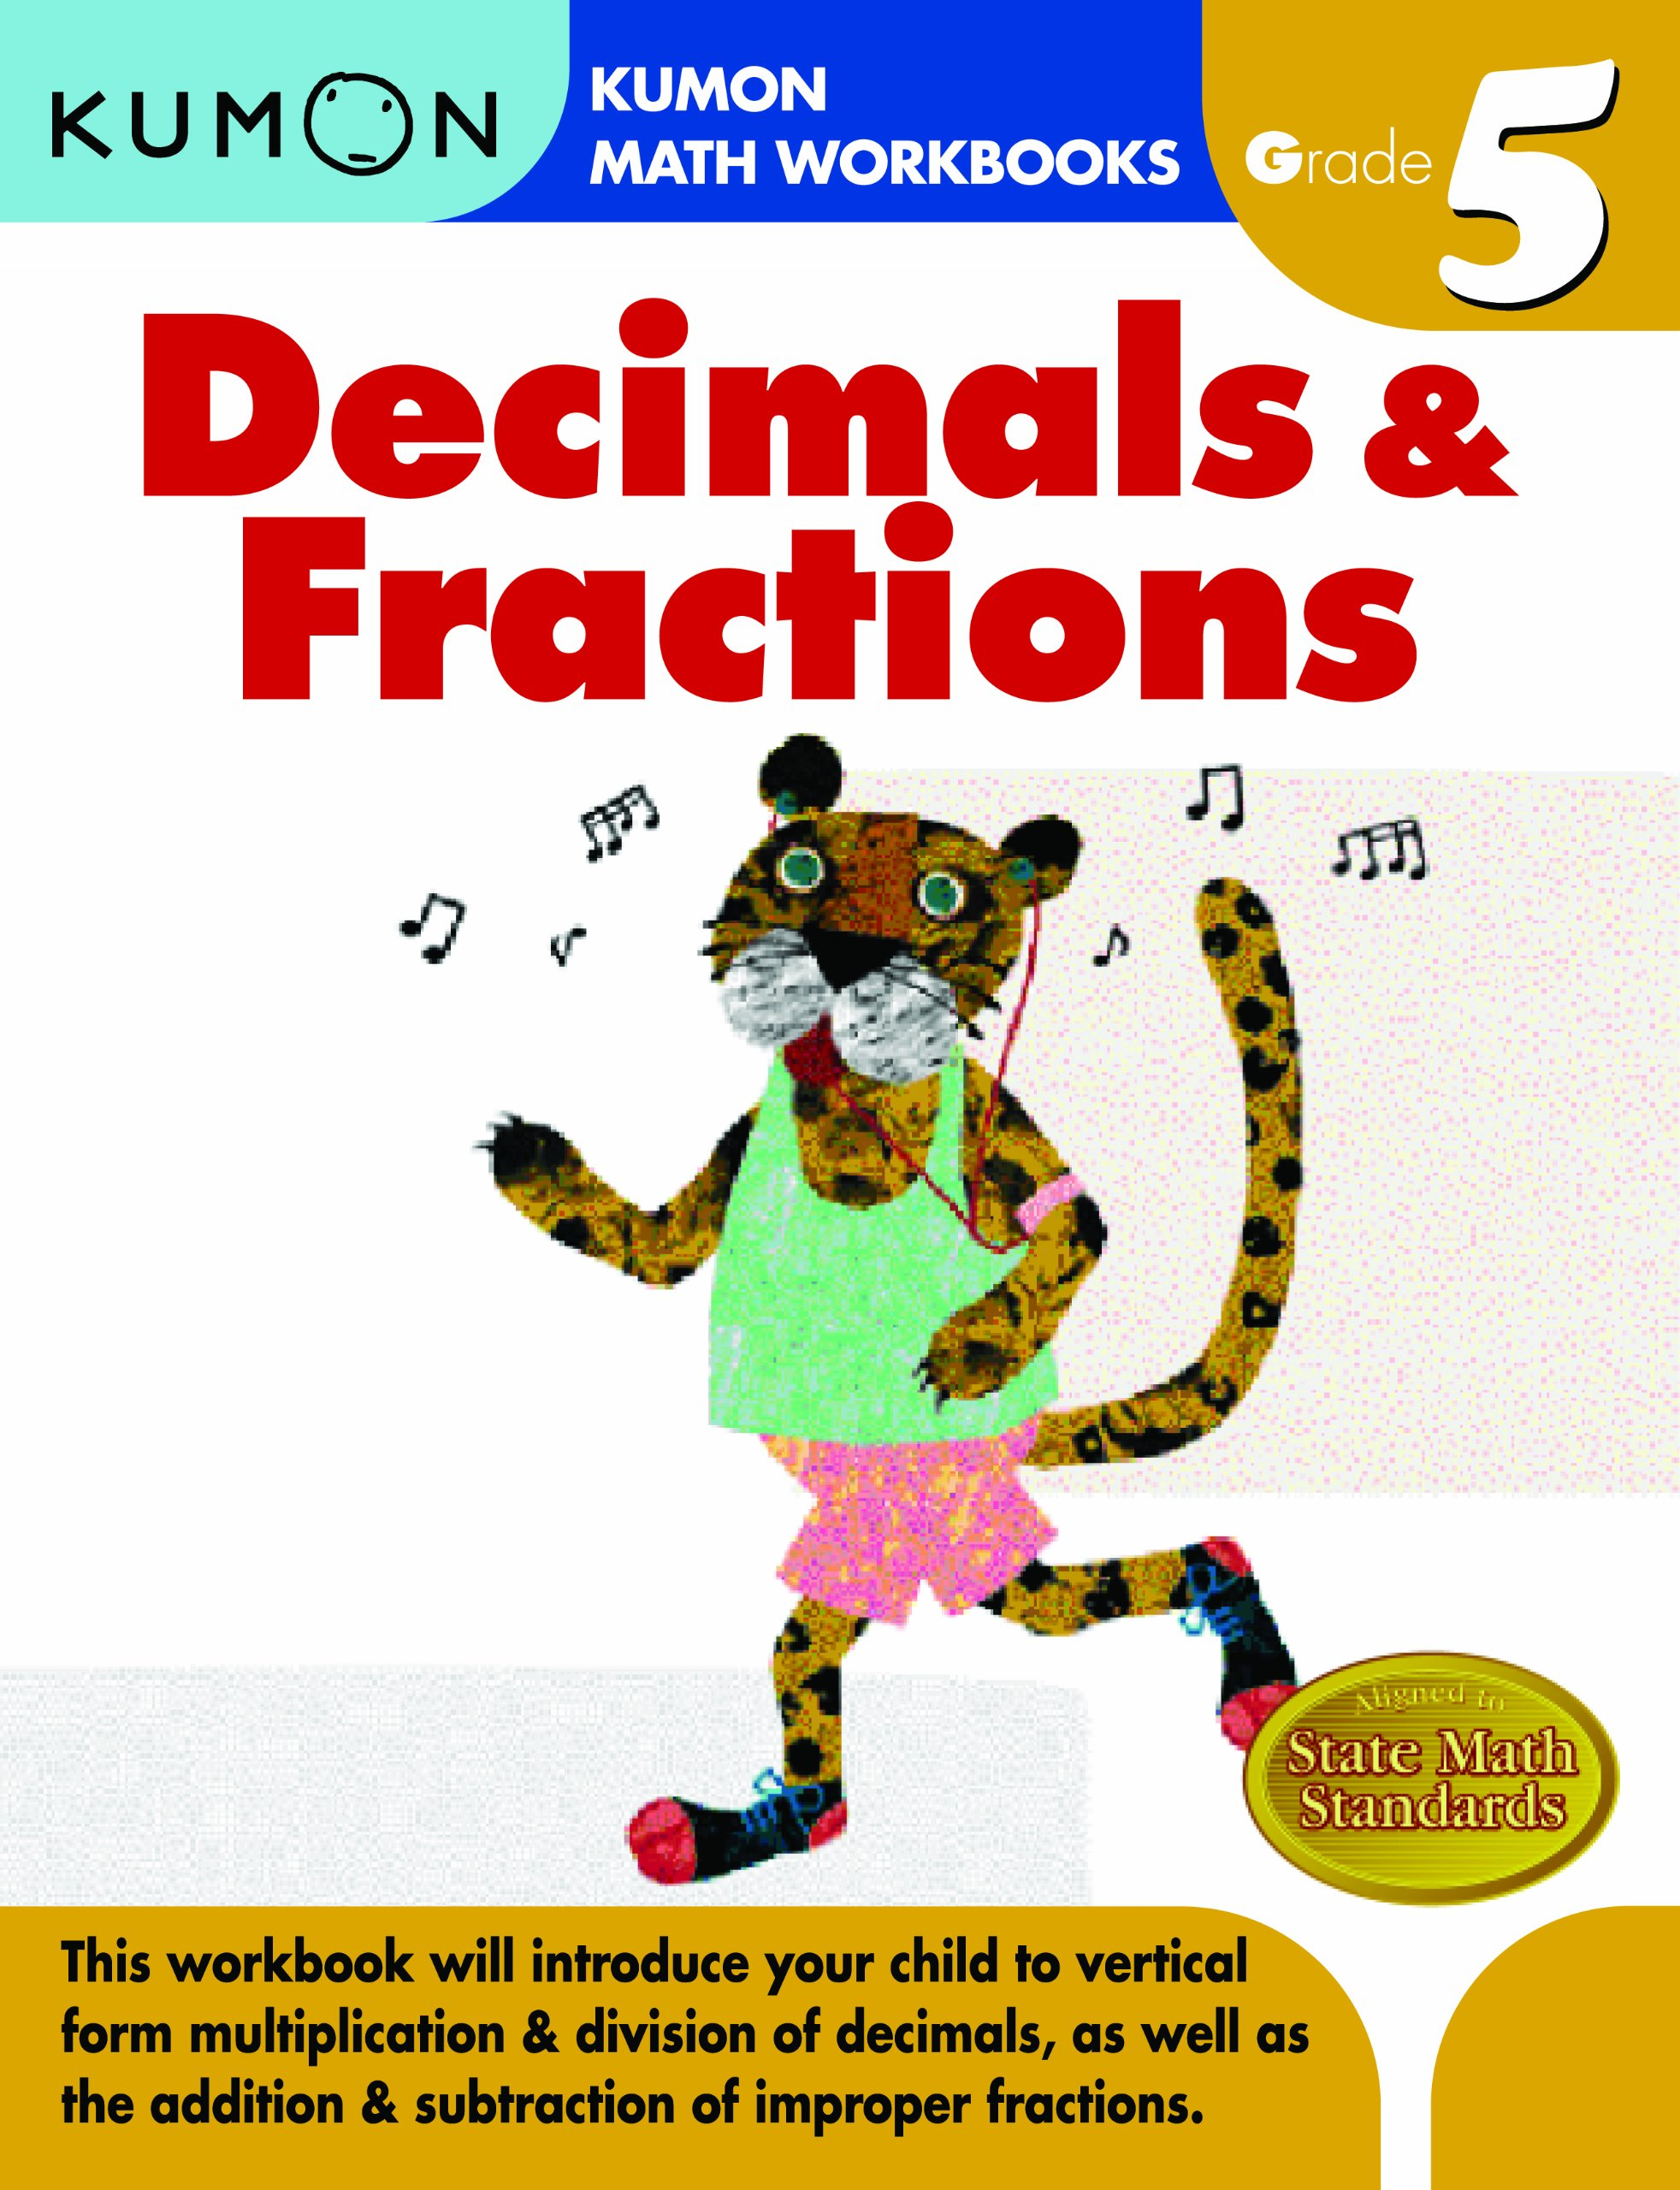 Worksheets Kumon Worksheets Free buy grade 5 decimals and fractions kumon math workbooks book online at low prices in india kumon